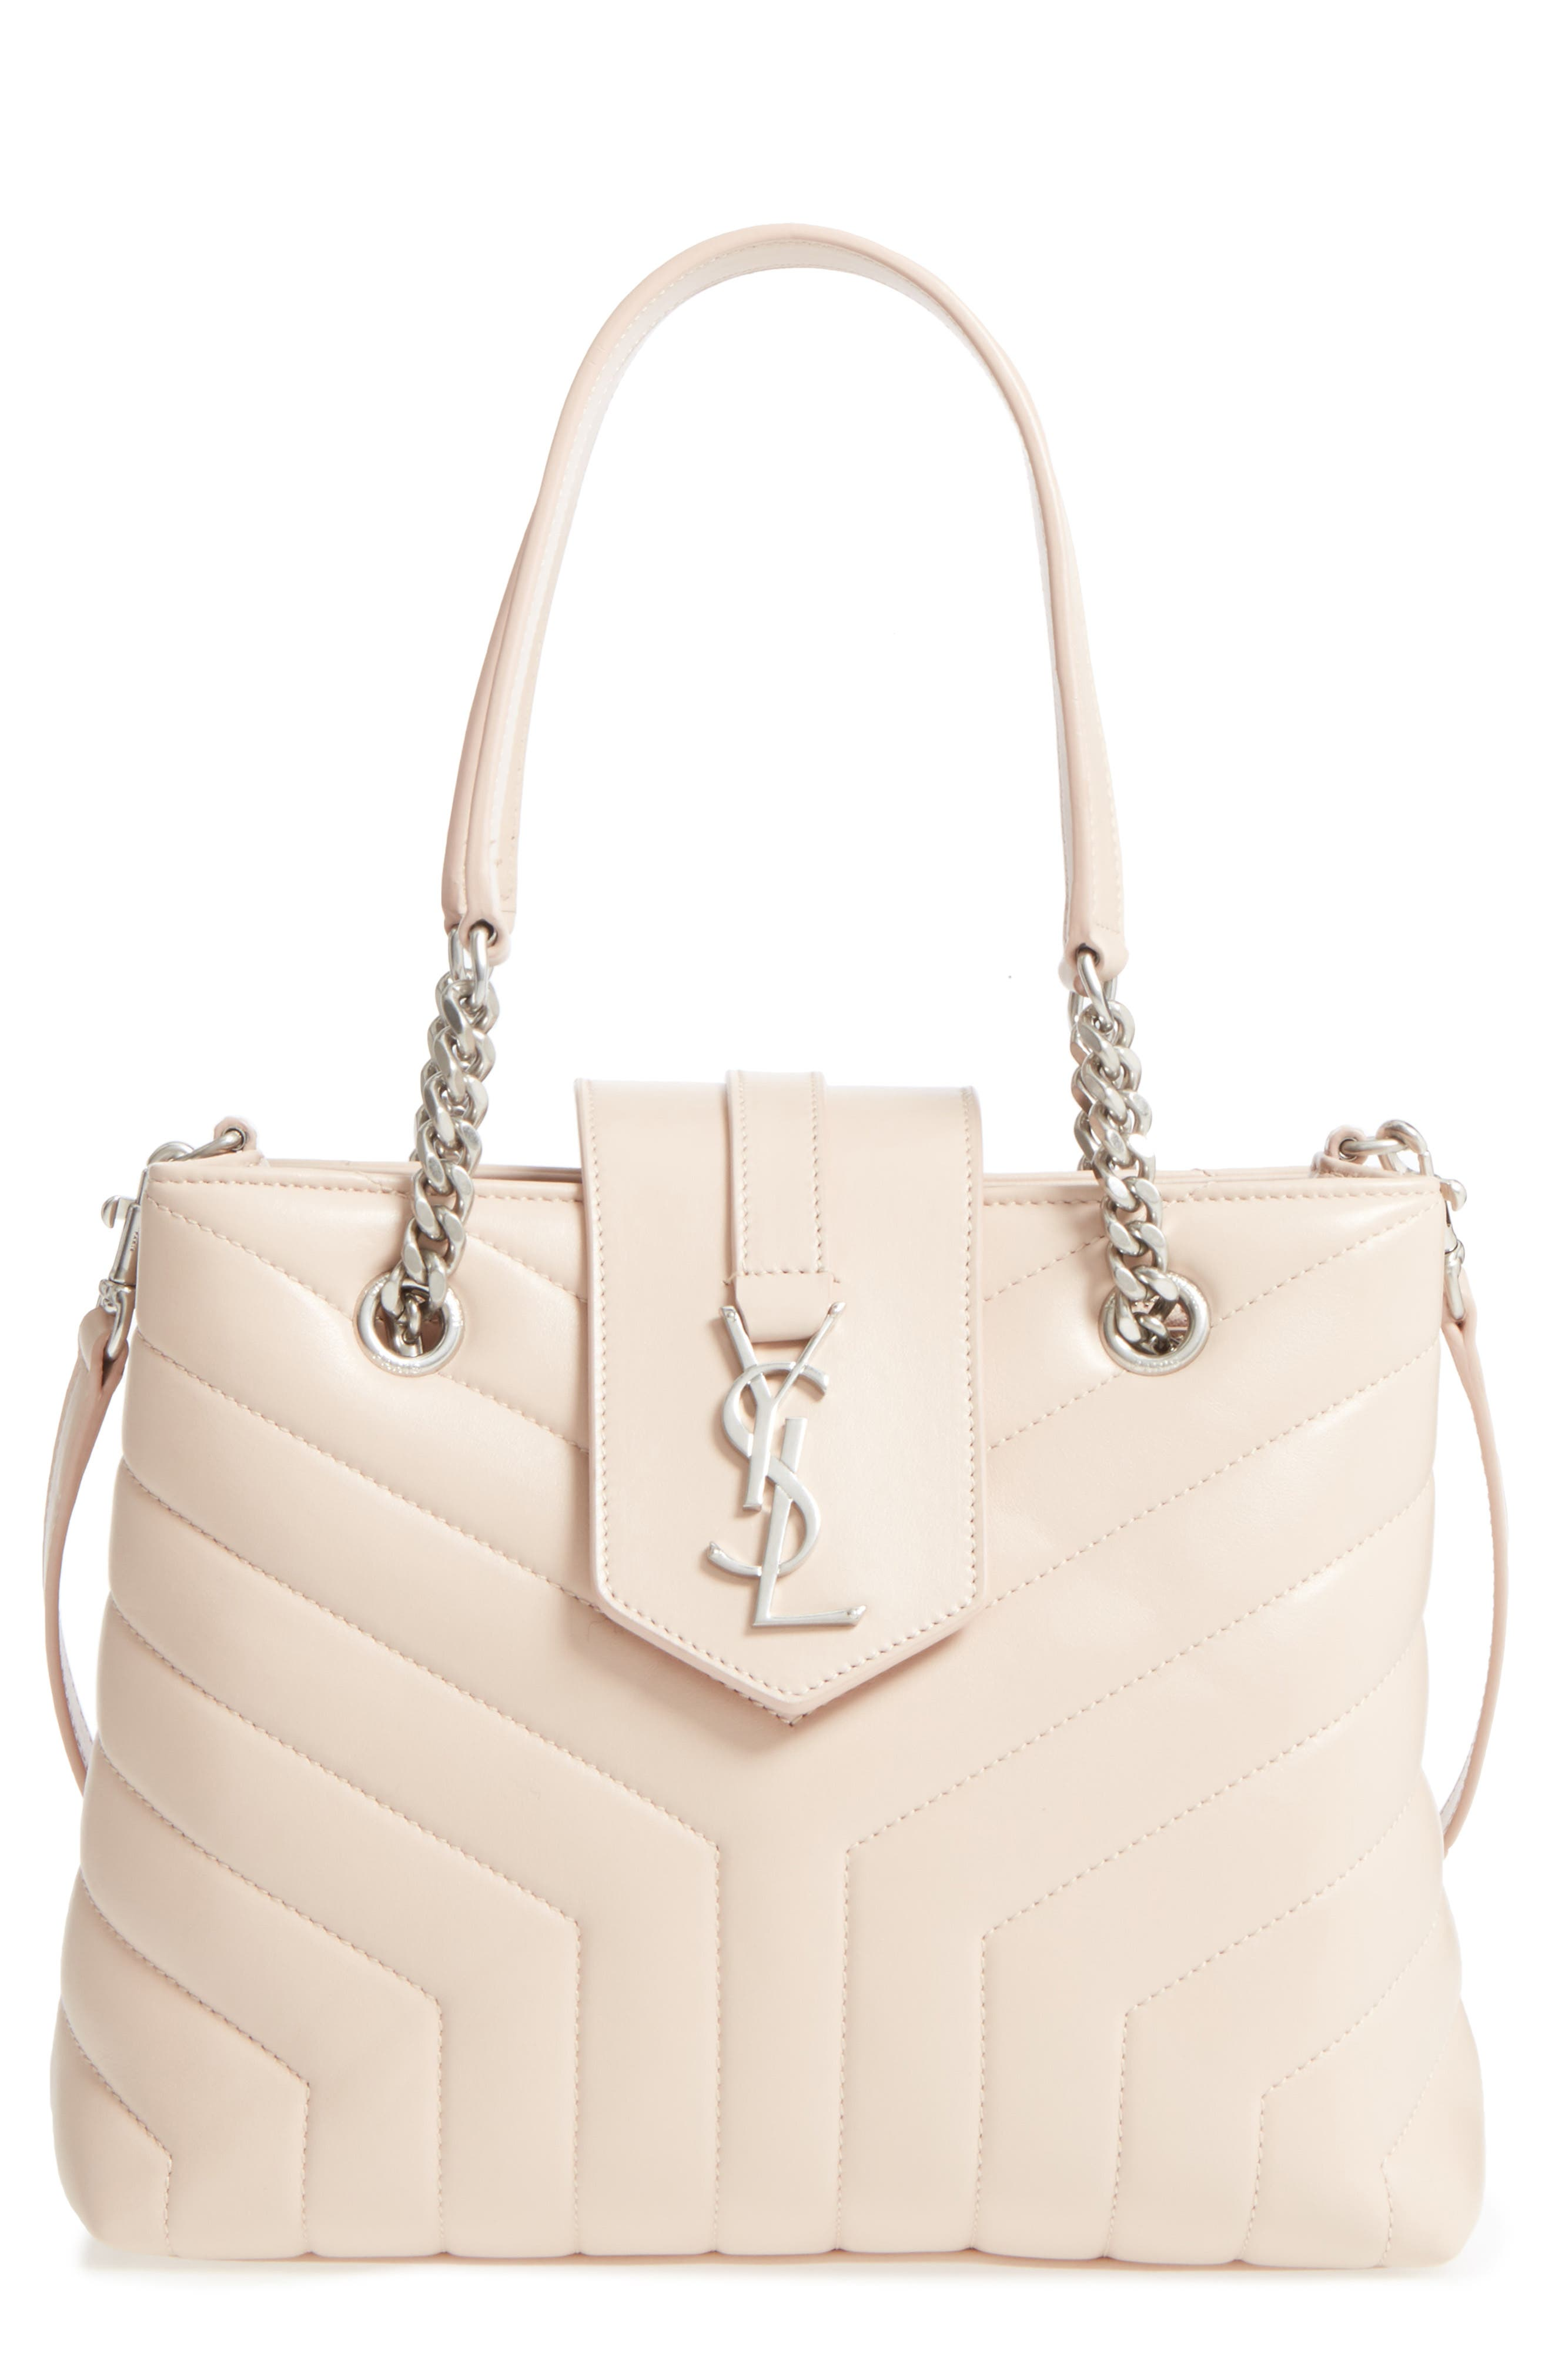 Saint Laurent Small Loulou Matelassé Leather Shopper